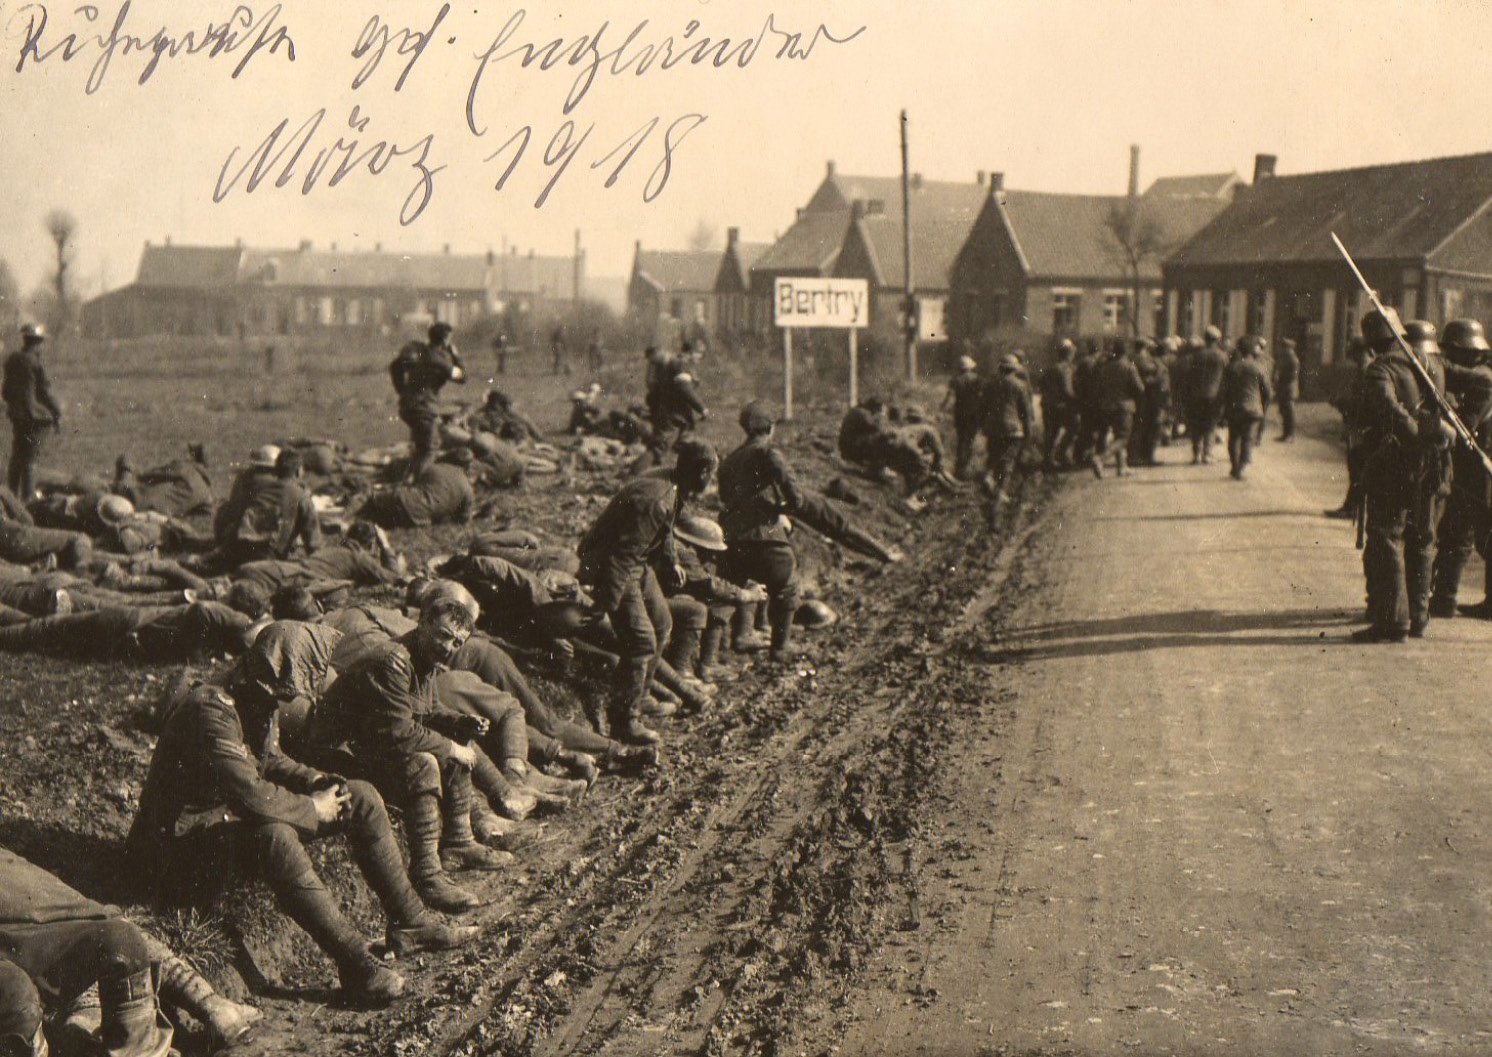 RIGHT These soldiers appear to have been taken prisoner in March 1918, when the Germans broke through British lines and made huge gains during the 'Ludendorff Offensive'. The great majority of prisoners were taken during the war of movement in either 1914 or 1918.